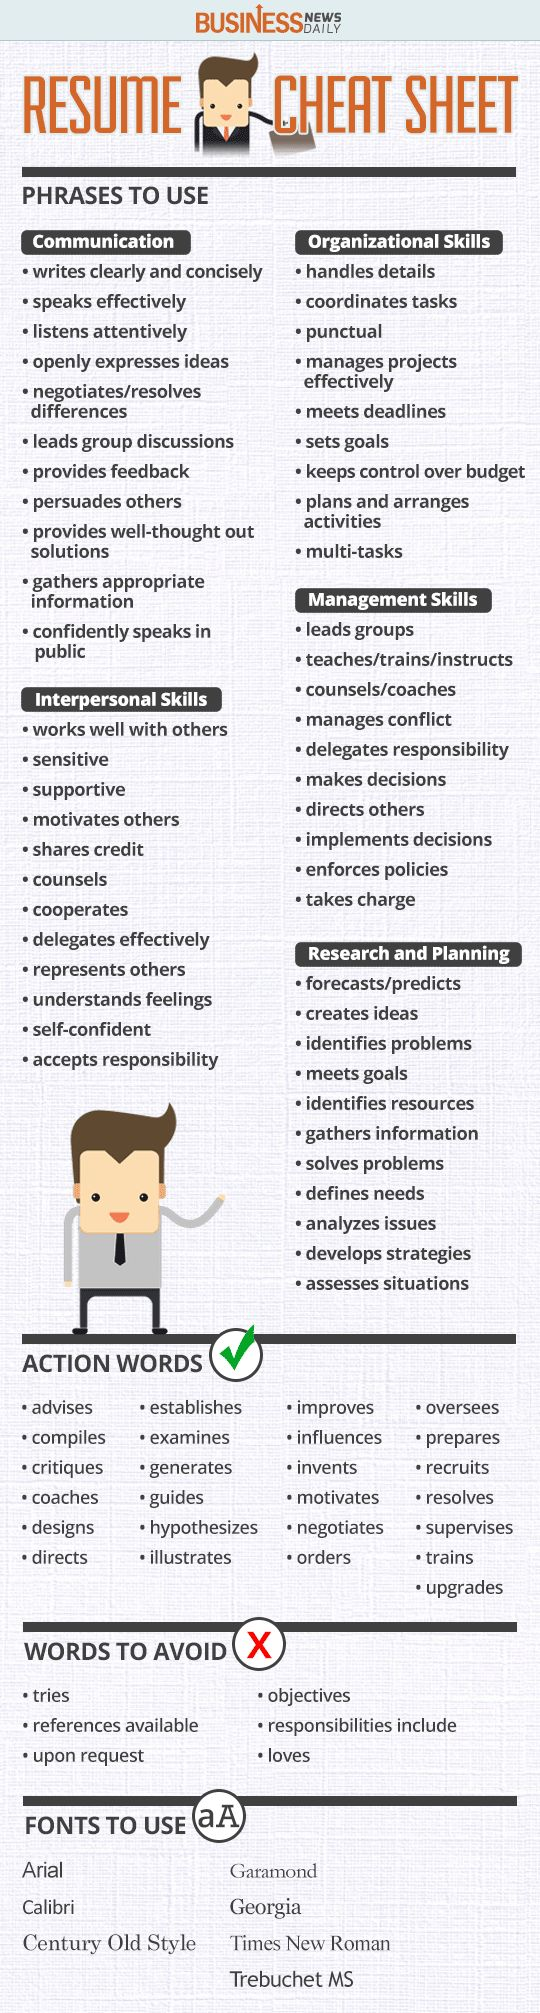 Opposenewapstandardsus  Personable  Ideas About Resume On Pinterest  Cv Format Resume Cv And  With Glamorous Resume Cheat Sheet Infographic Andrews Almost Done With A Complete Unit On Employment Which With Archaic Architect Resume Samples Also Supervisor Resume Objective In Addition Software Developer Resume Sample And Administrative Coordinator Resume As Well As Google Resume Tips Additionally Sample Of Resume Cover Letter From Pinterestcom With Opposenewapstandardsus  Glamorous  Ideas About Resume On Pinterest  Cv Format Resume Cv And  With Archaic Resume Cheat Sheet Infographic Andrews Almost Done With A Complete Unit On Employment Which And Personable Architect Resume Samples Also Supervisor Resume Objective In Addition Software Developer Resume Sample From Pinterestcom